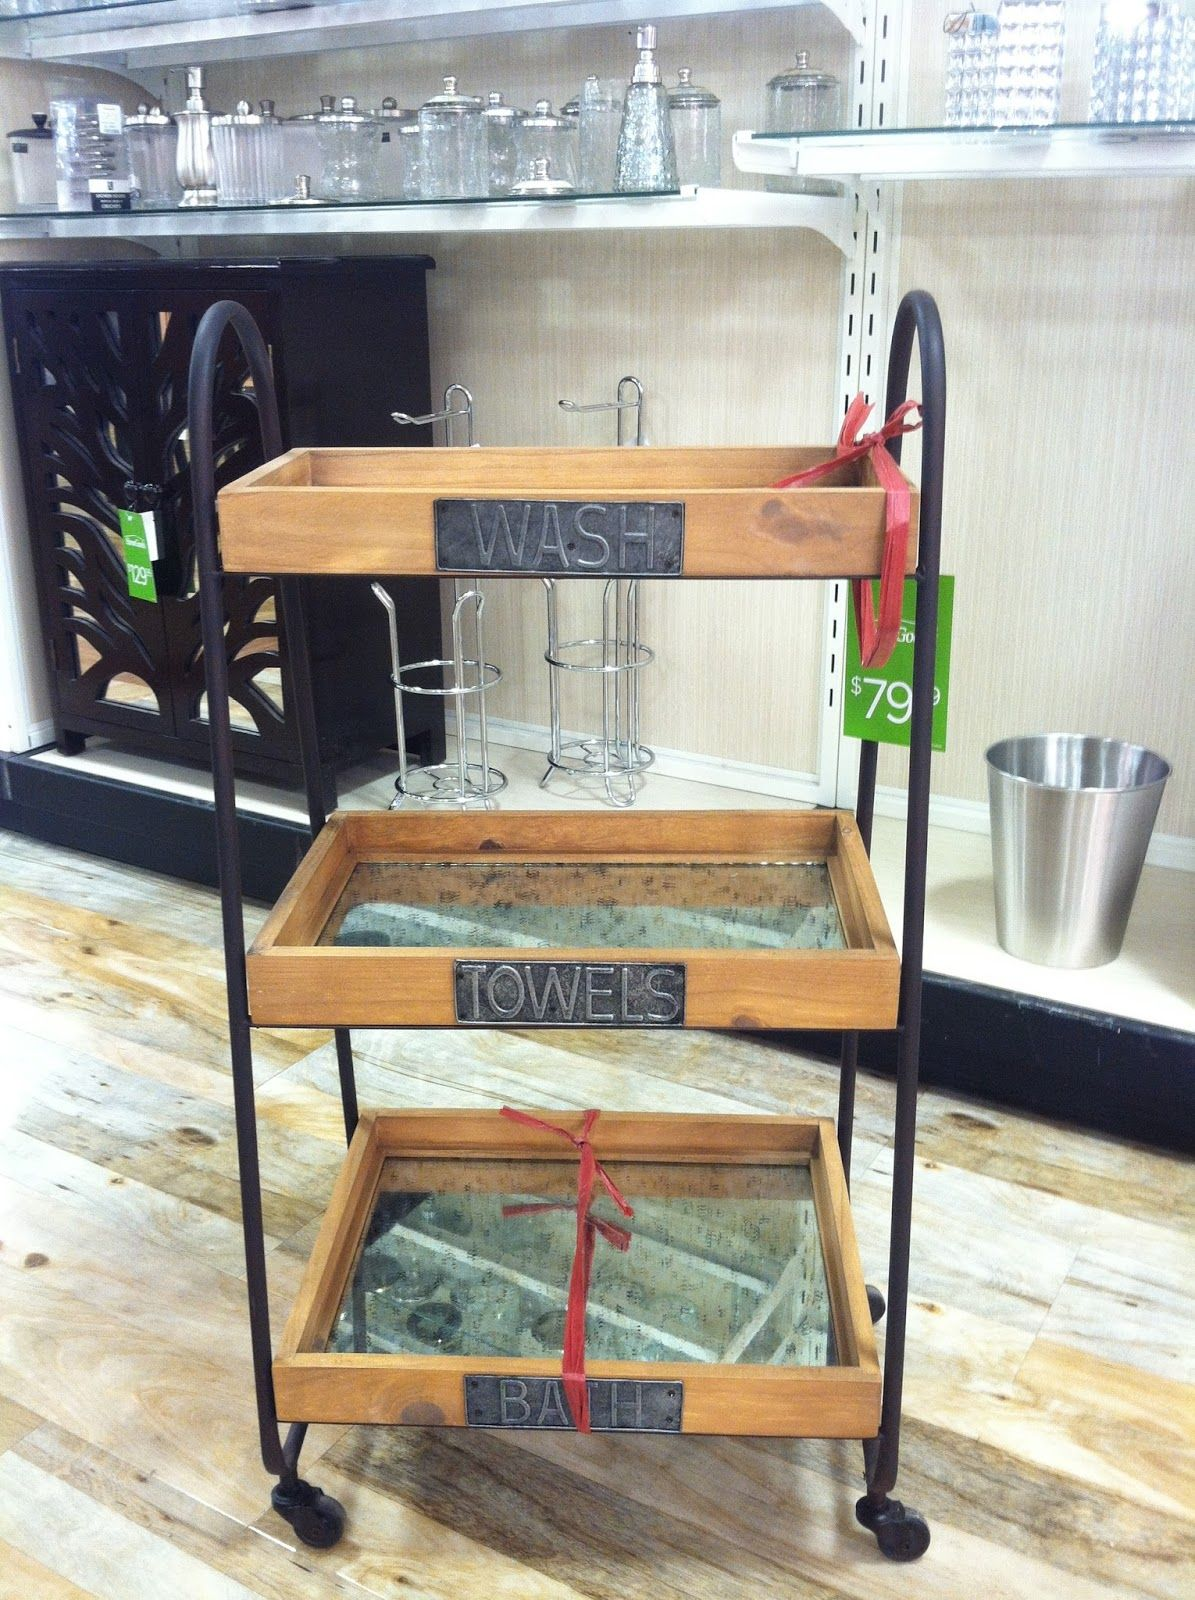 Homegoods. Storage for half bath (With images) | Home ...